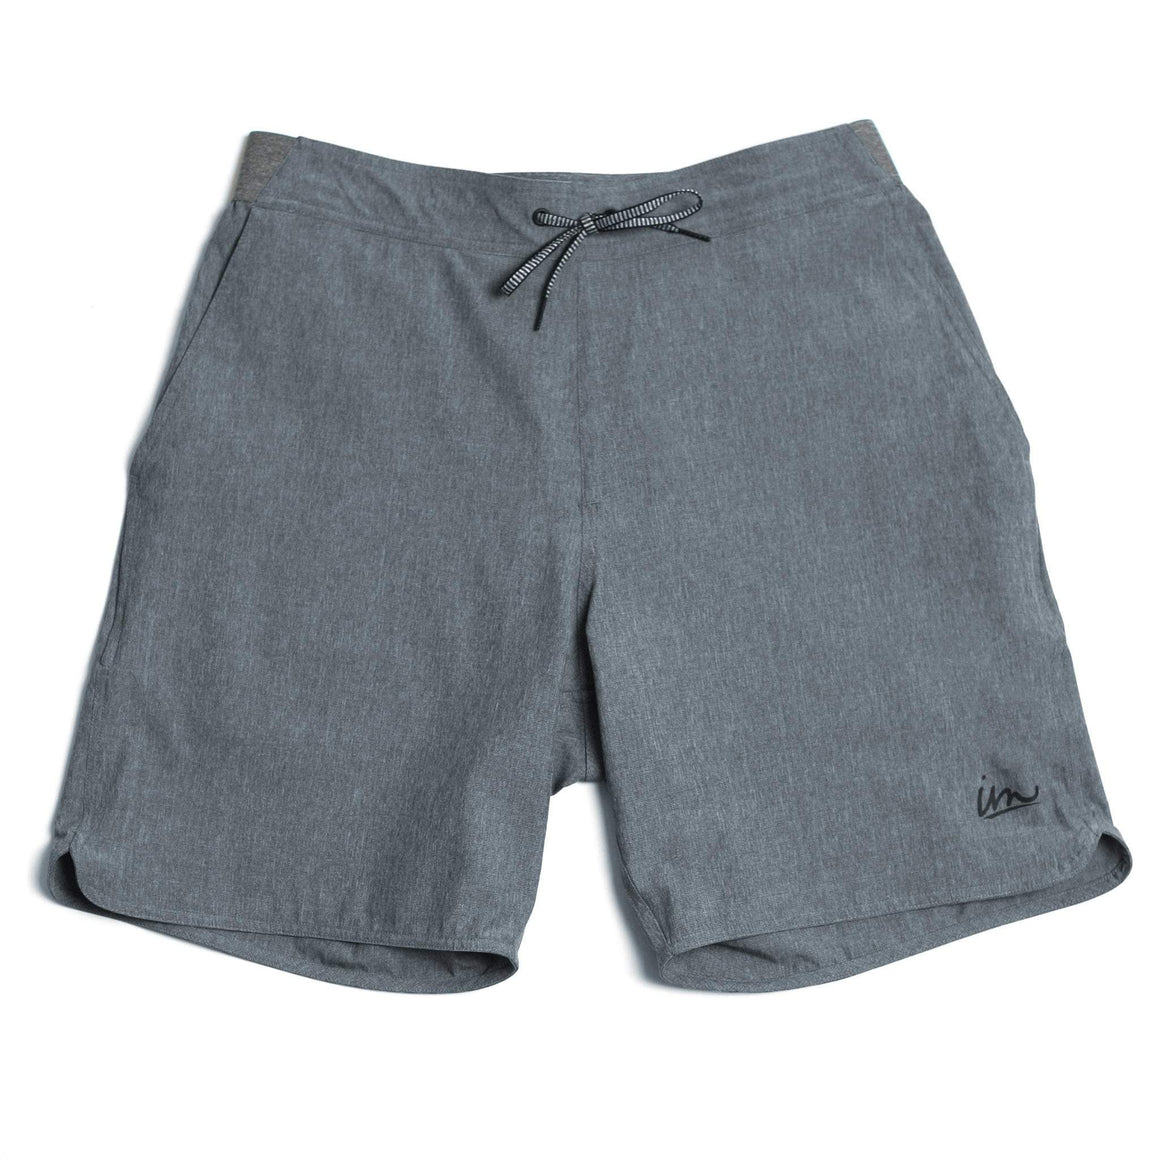 "Imperial Motion Everything 18"" Classic Boardshort - Denim Melange"